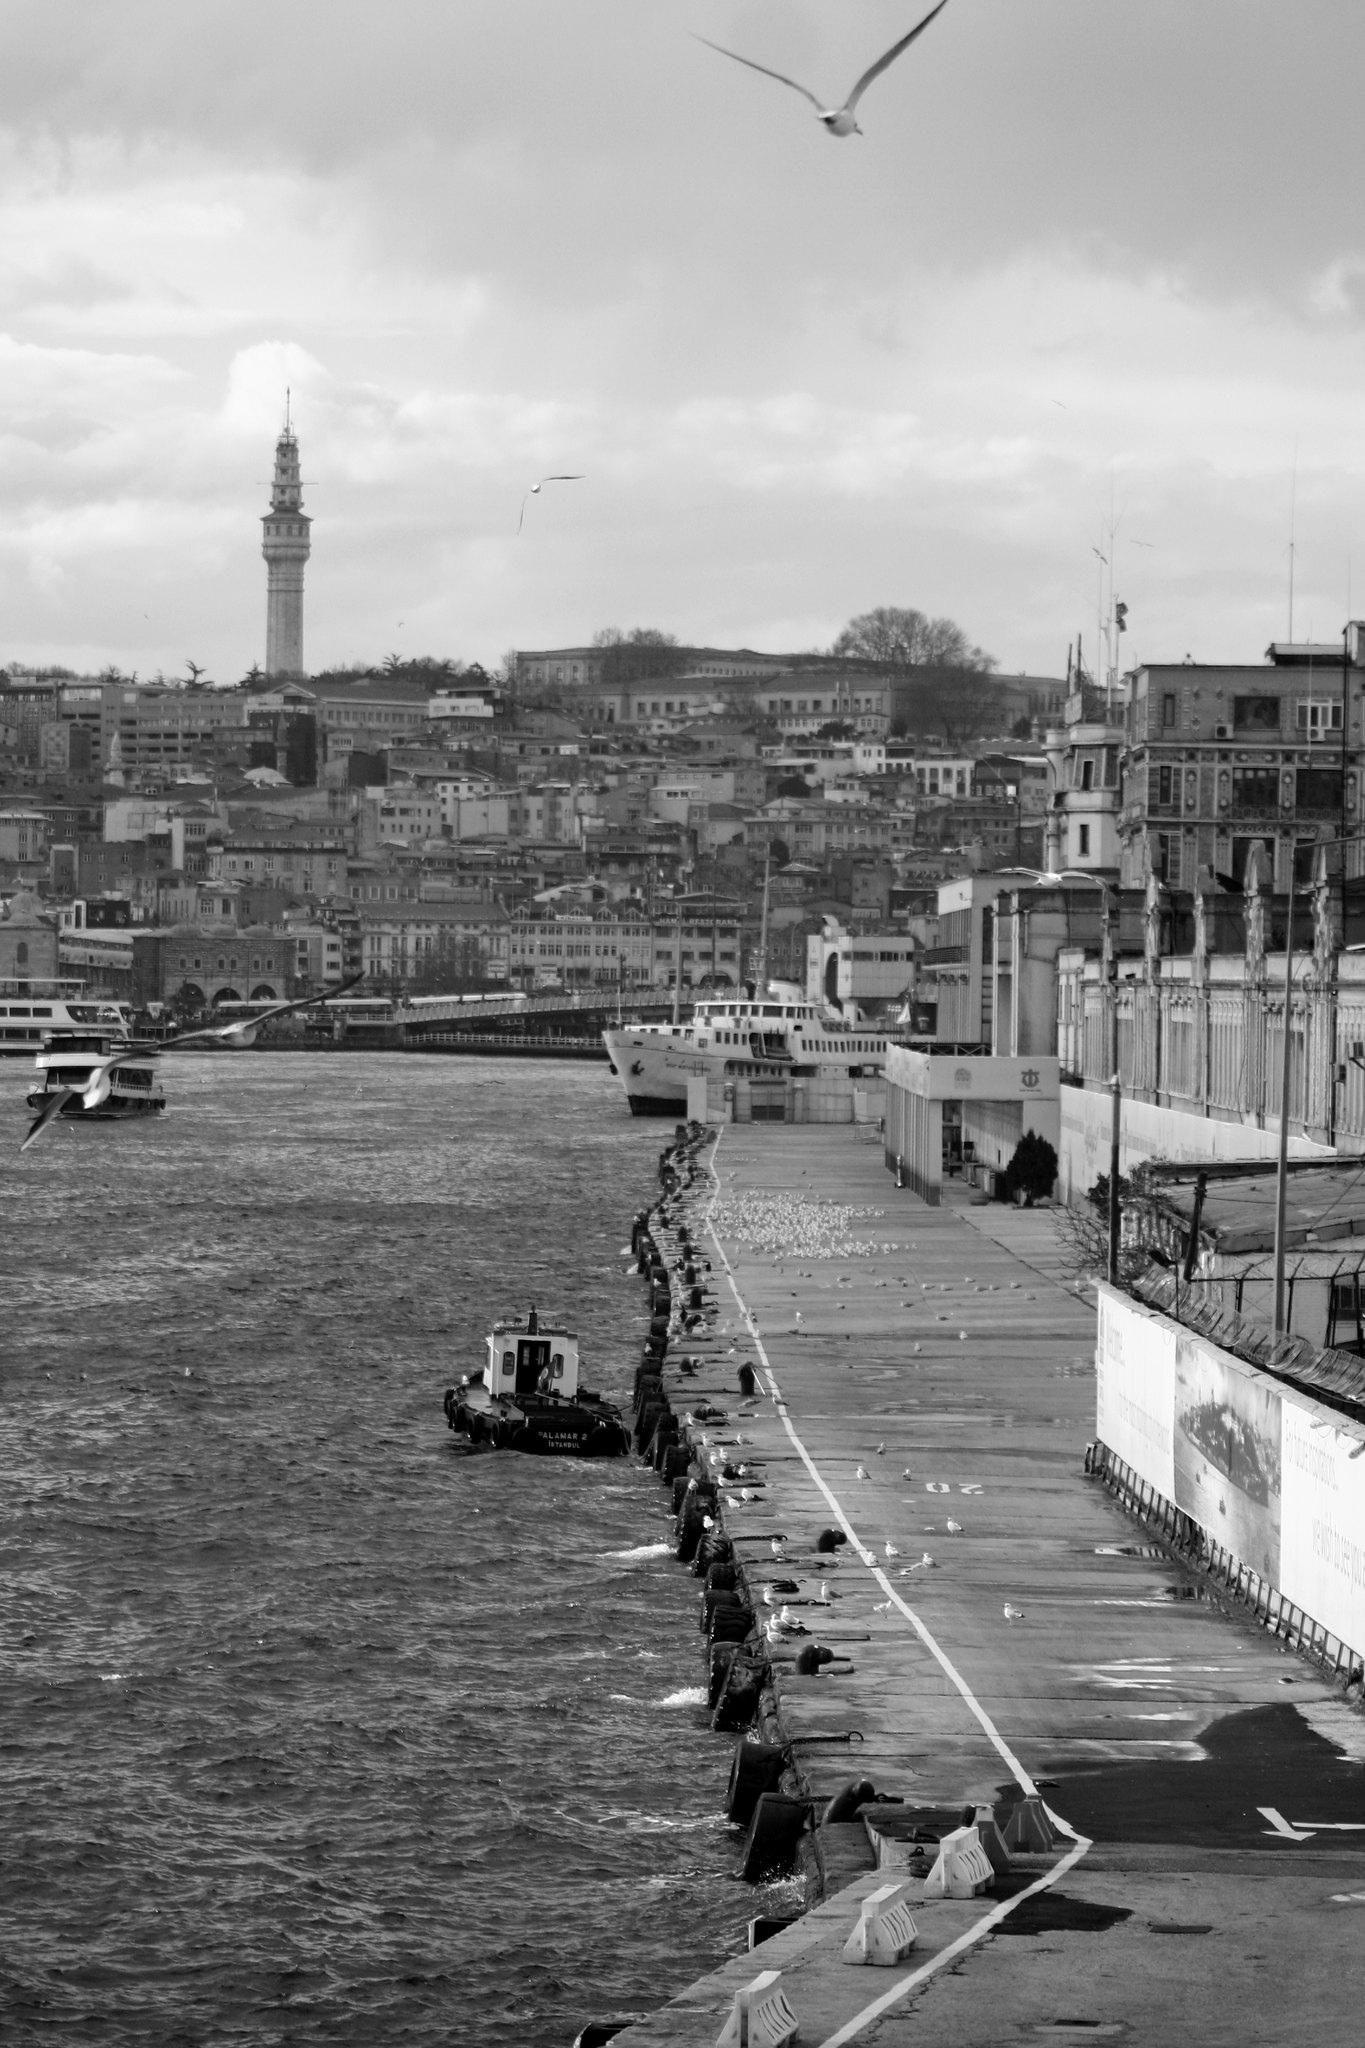 The view towards Galata Bridge.